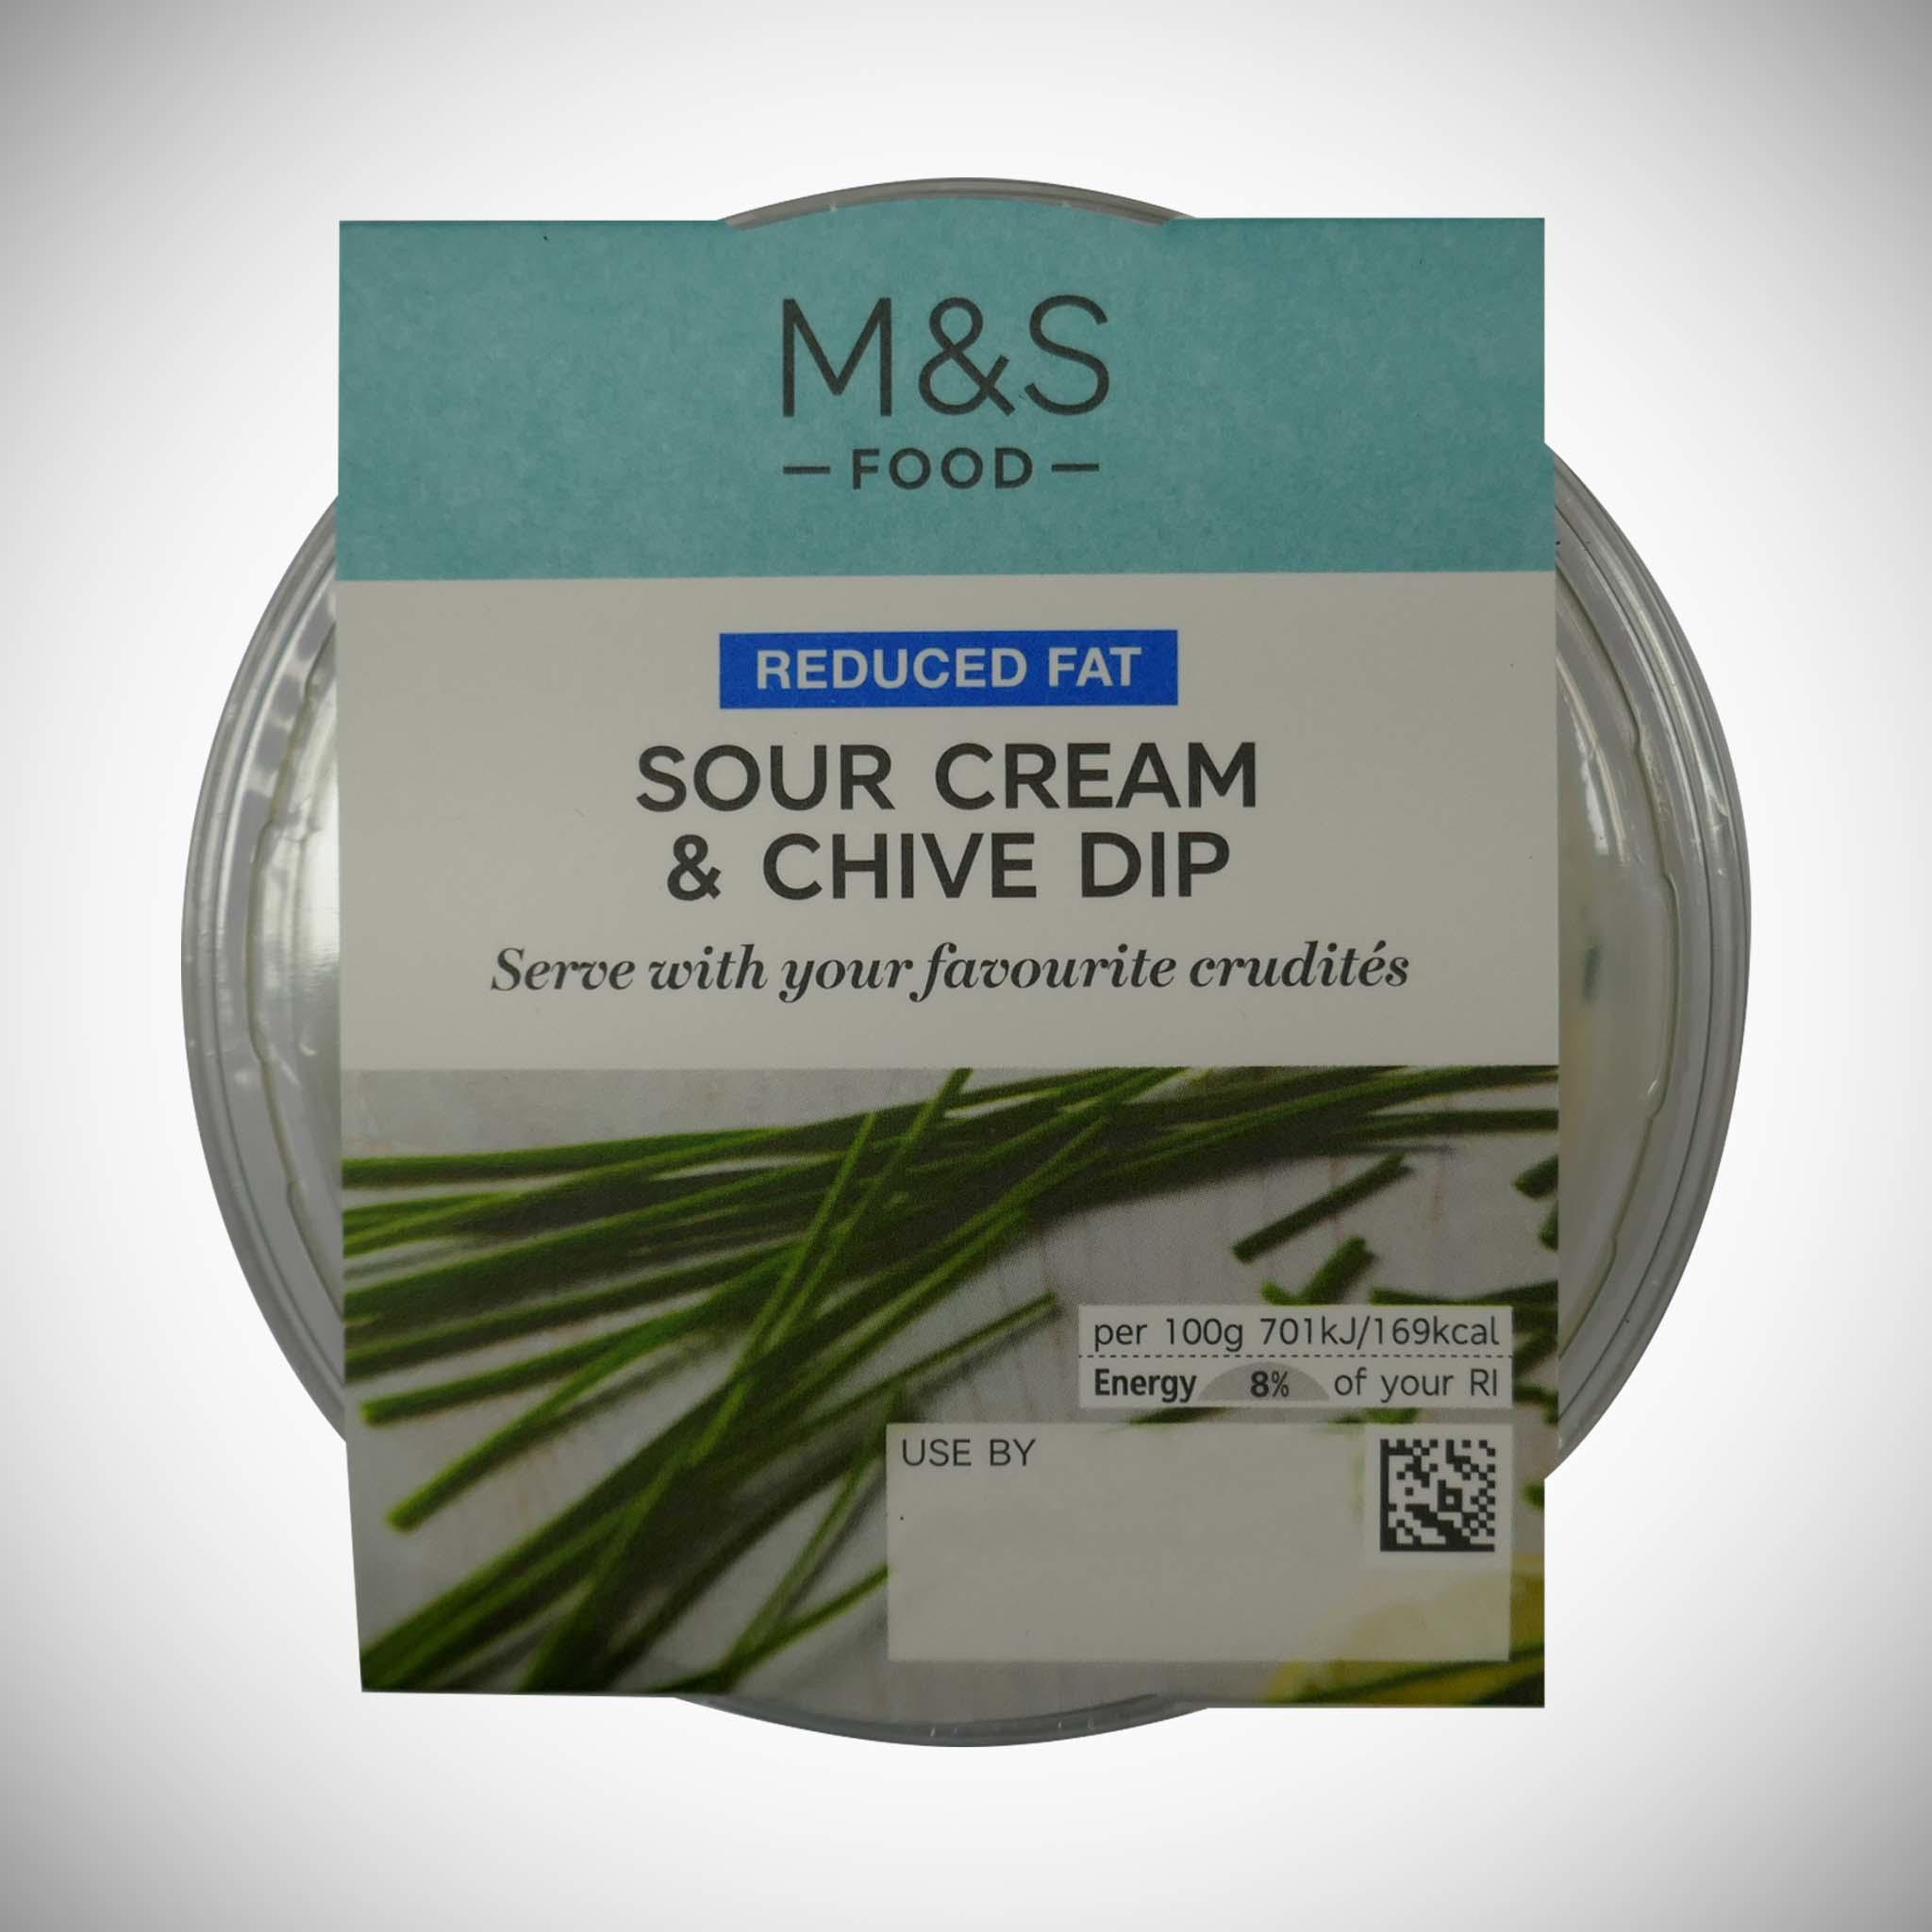 Reduced Fat Sour Cream & Chive Dip 230g